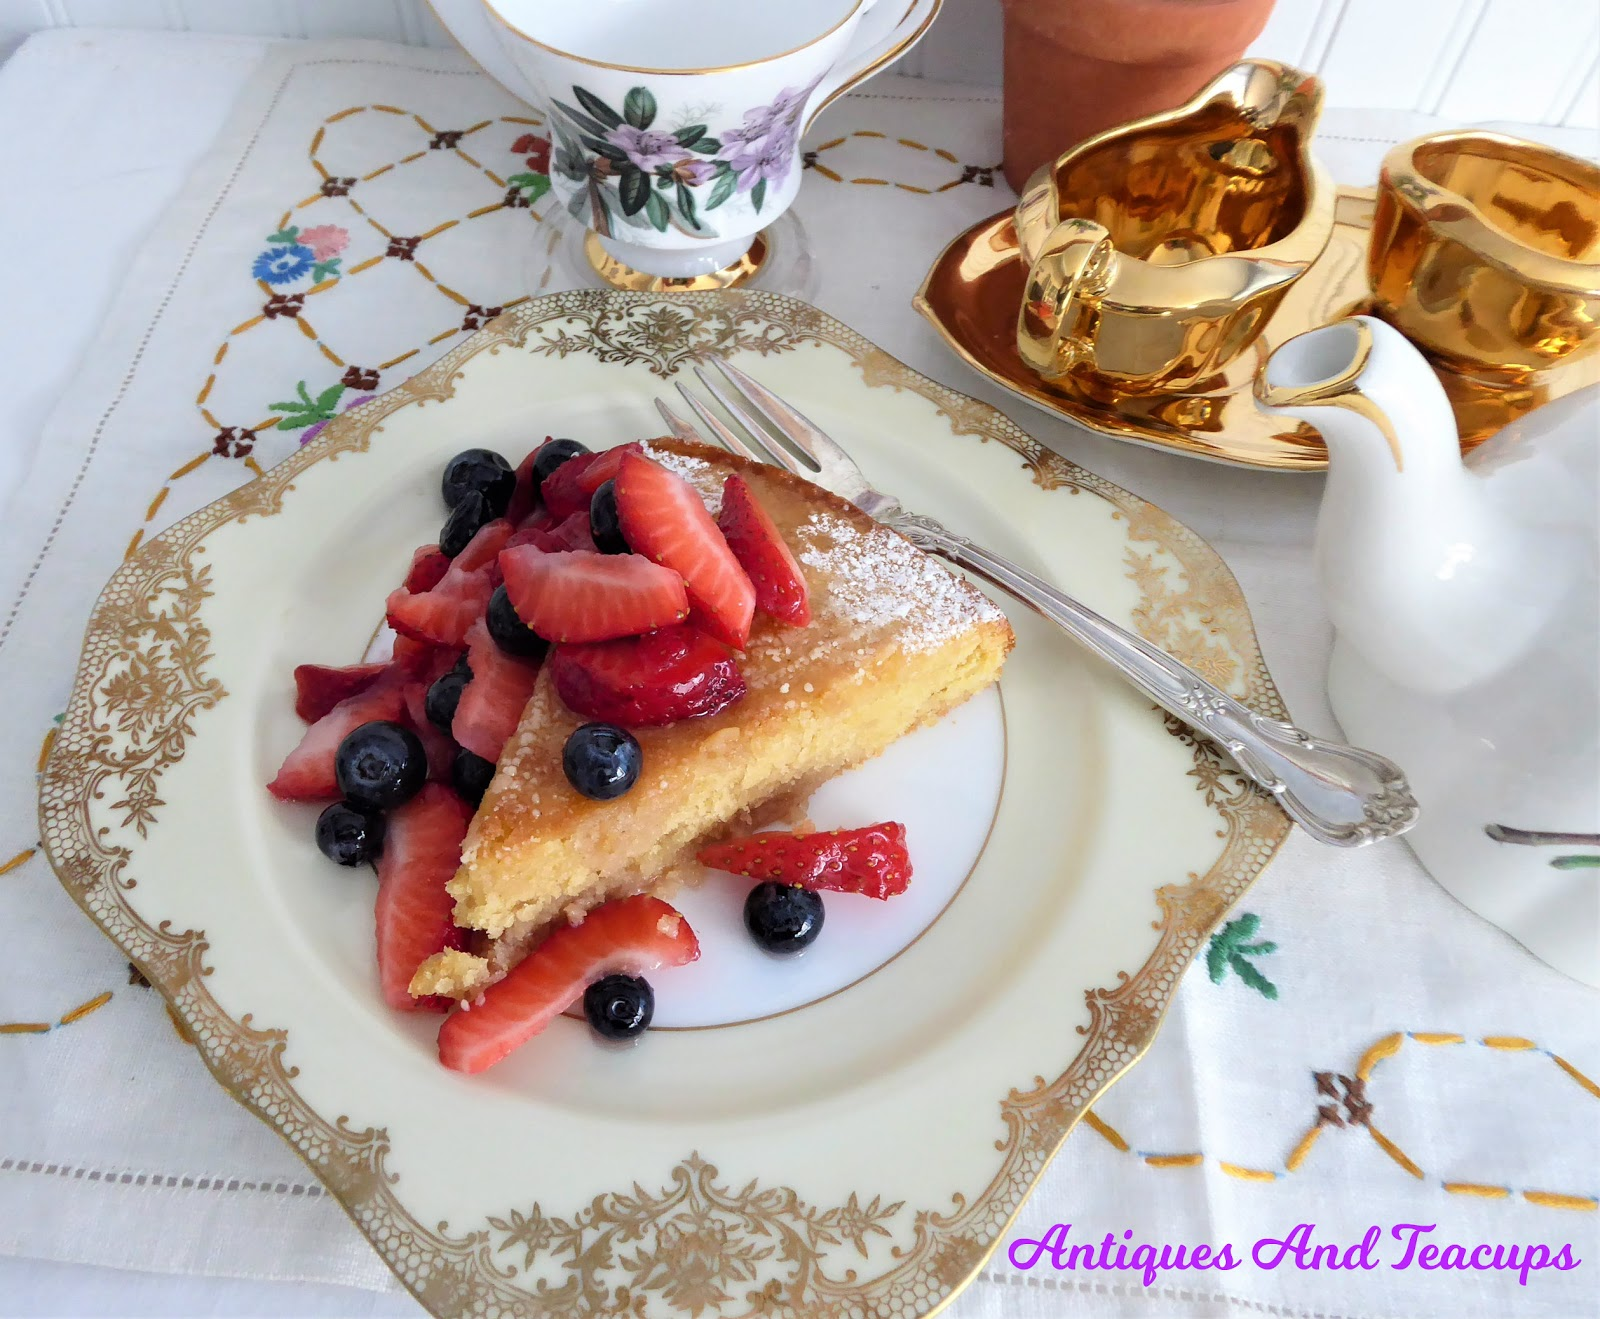 Antiques And Teacups: May 2019